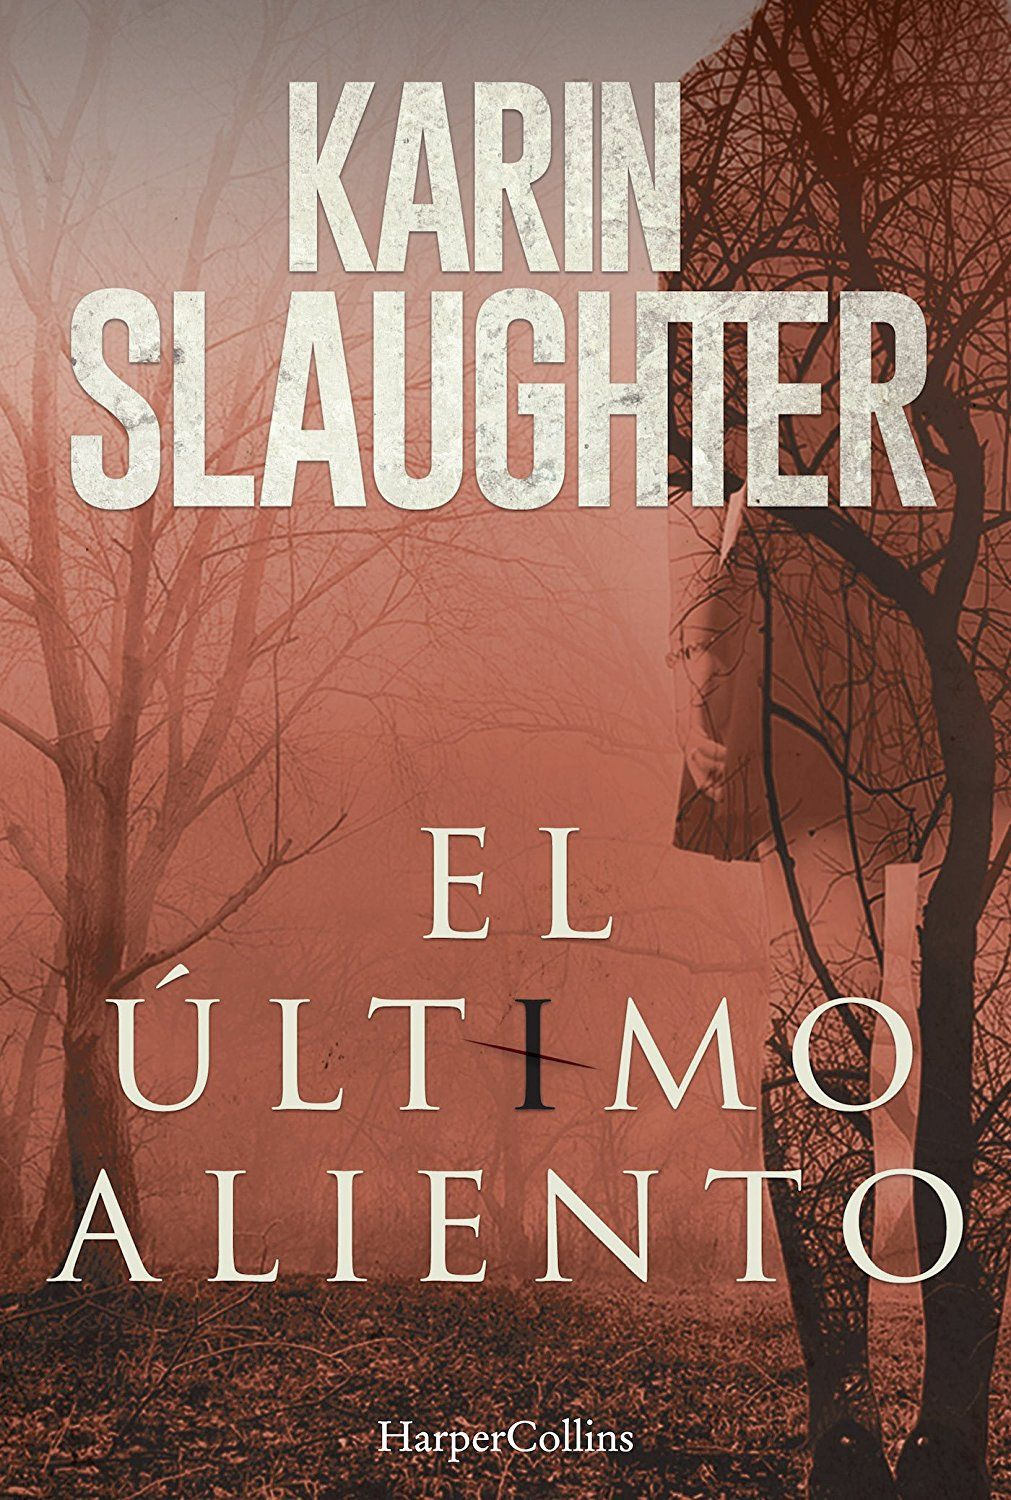 Kindle Descargar Libros Gratis El último Aliento Ebook Karin Slaughter Amazon Es Tienda Kindle